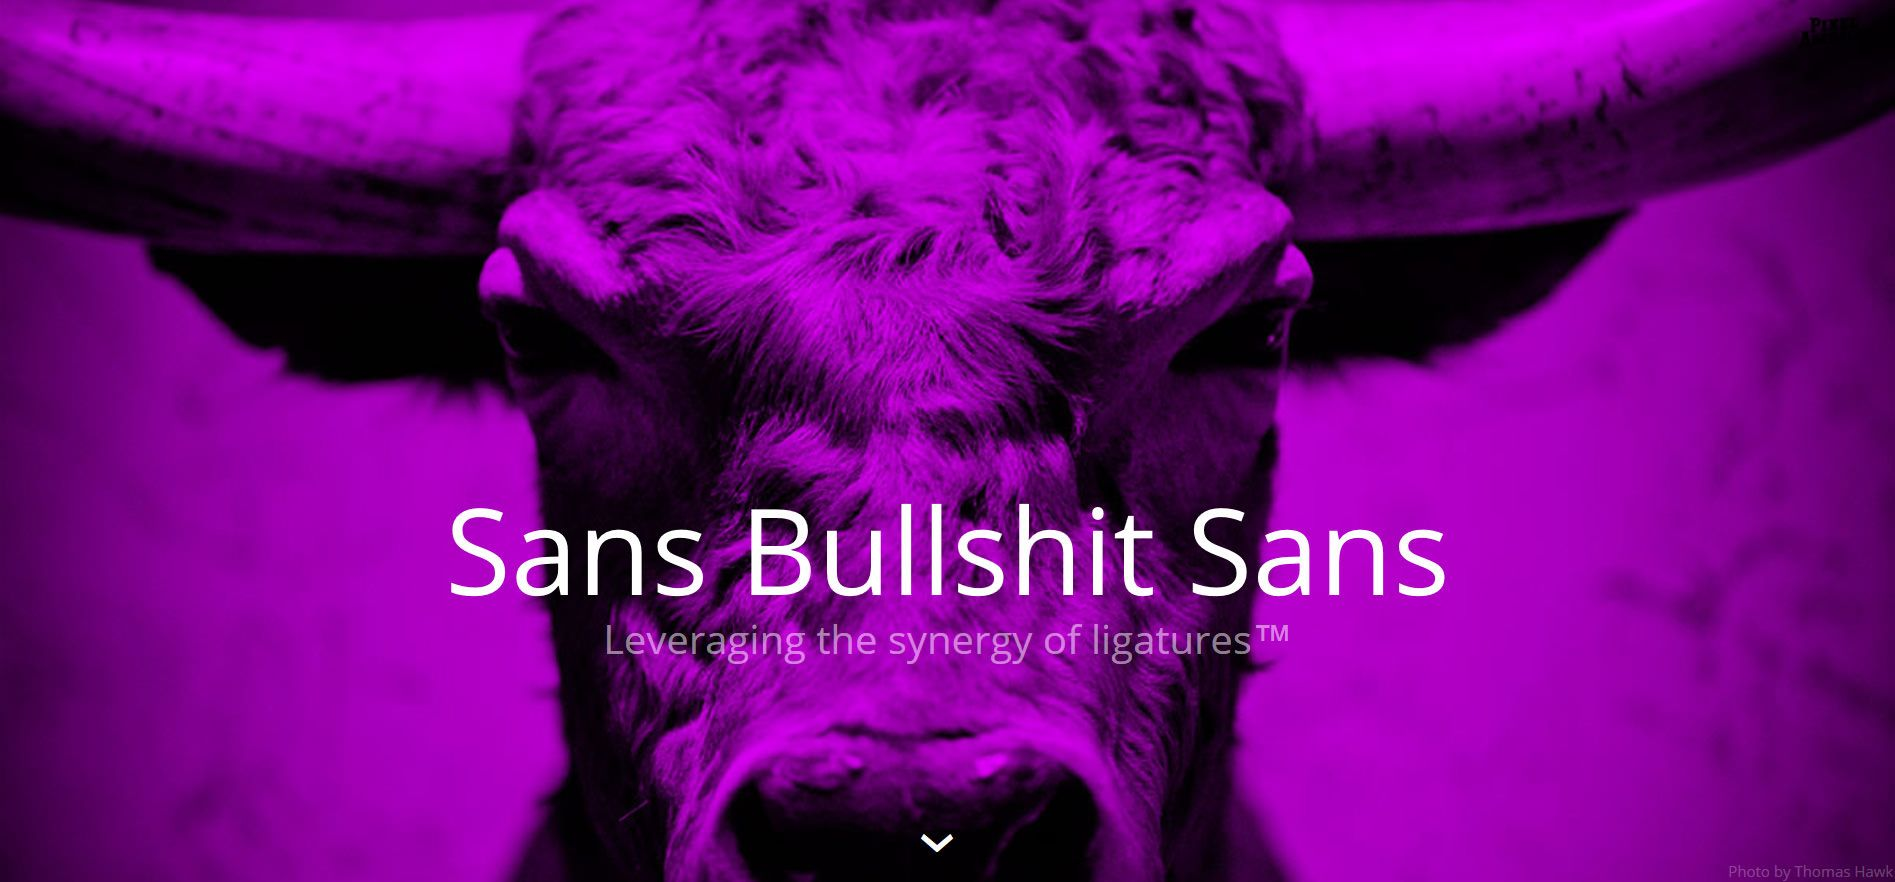 Crap-detecting Bullshit Sans - The font that replaces many buzzwords by a Comic Sans-styled censorship bar. Made by Roel Nieskens, who exchanged the ligatures in this font with bullshit, by adding bullshit expressions to the OpenType-Ligatures-Table. Well done!